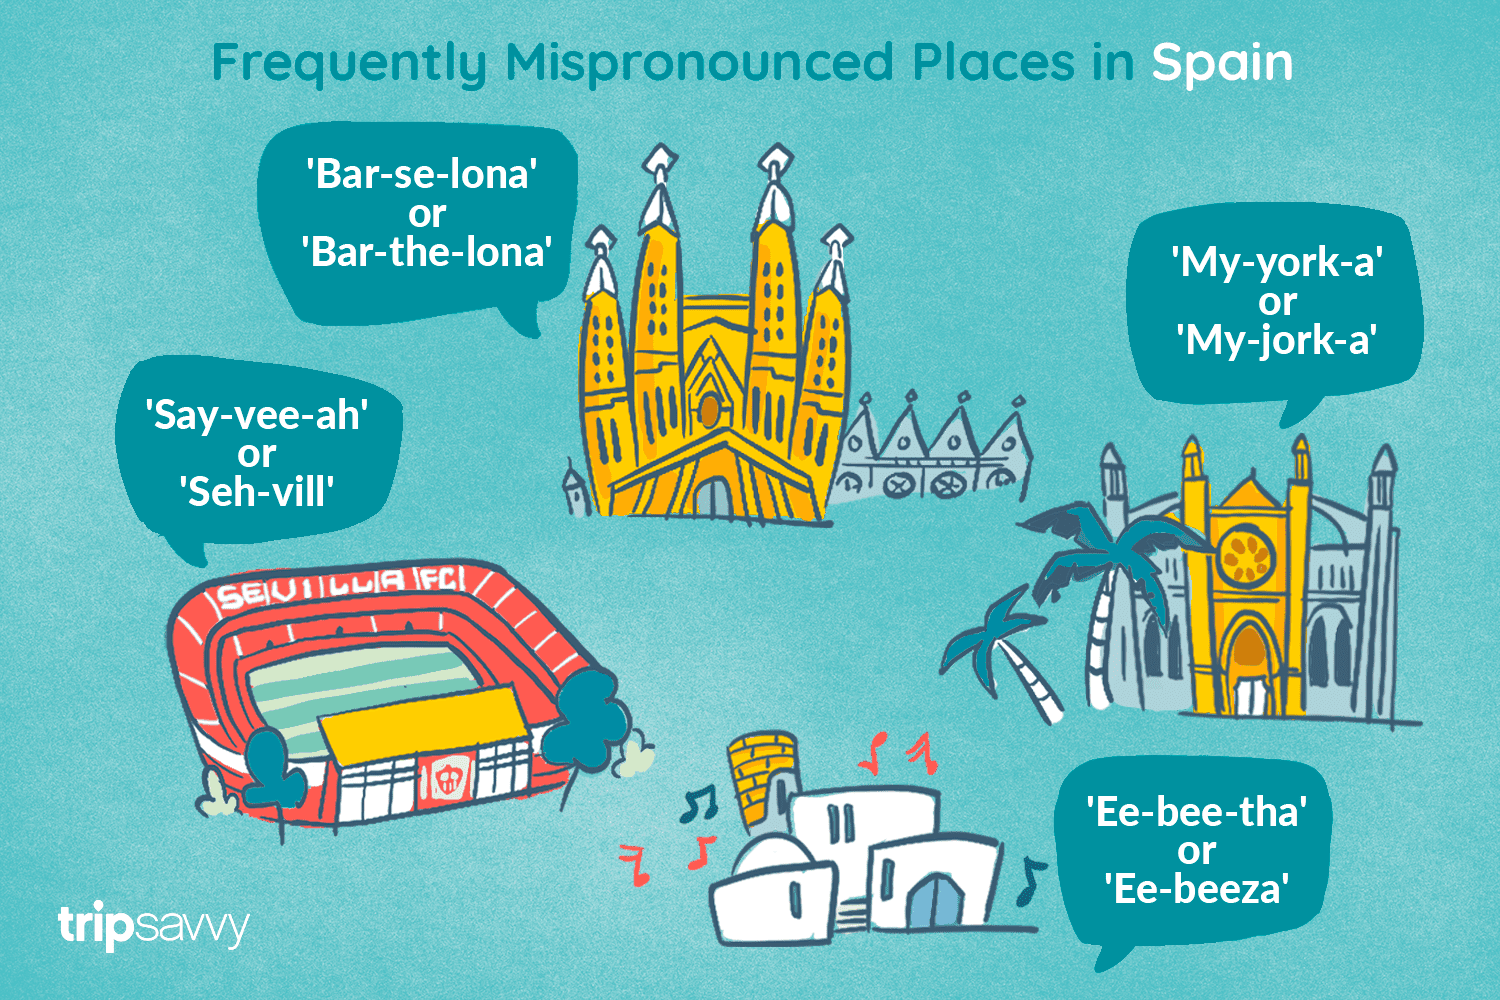 How to Say Frequently Mispronounced Places in Spain